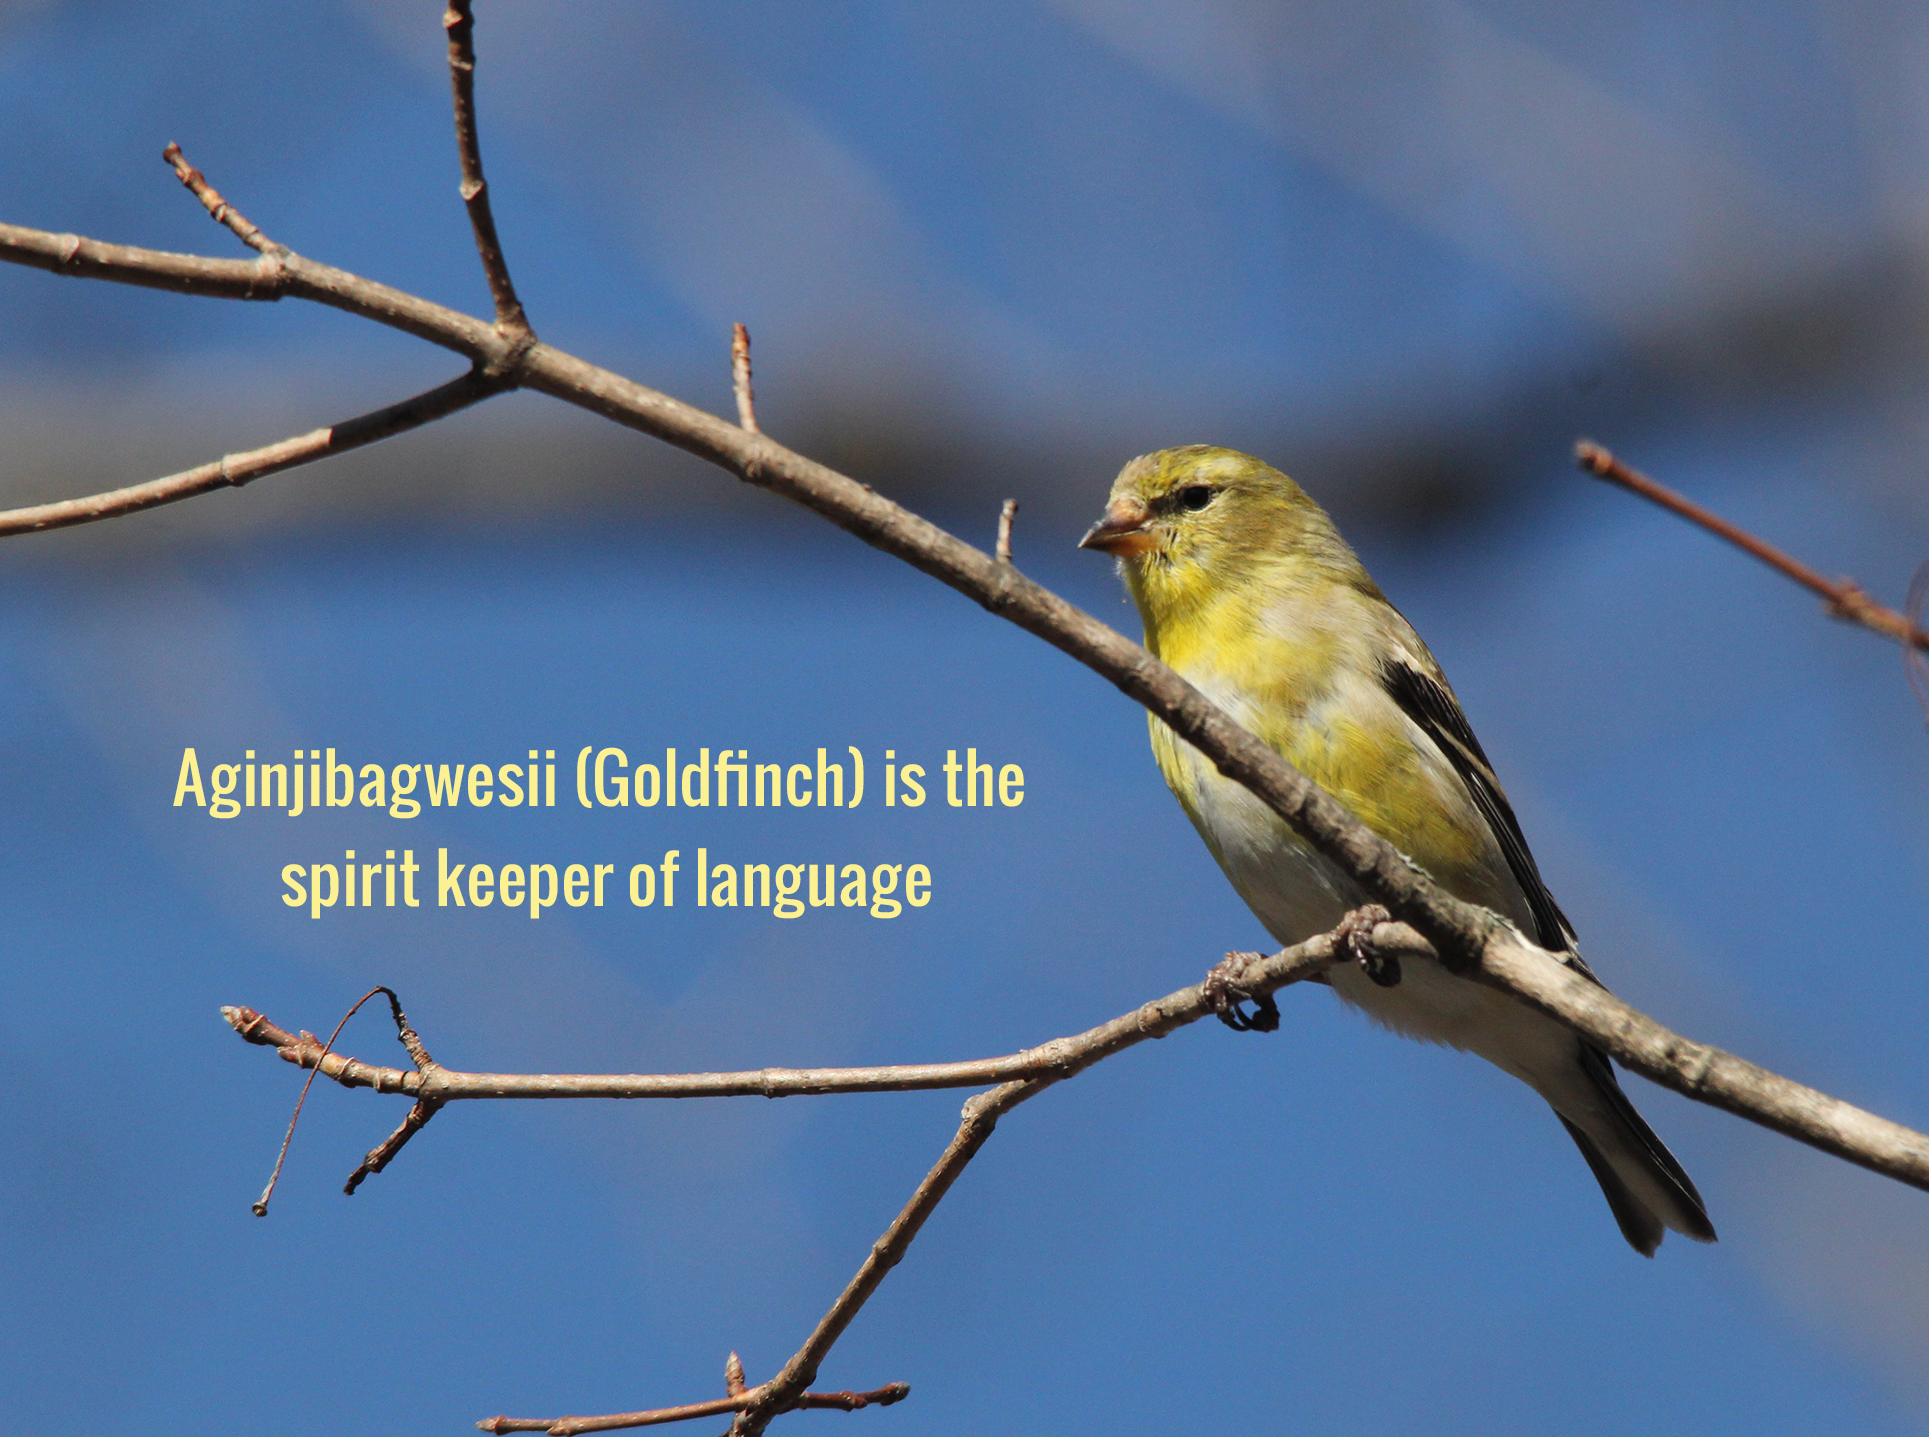 Aginjibagwesii (Goldfinch) is the spirit keeper of language